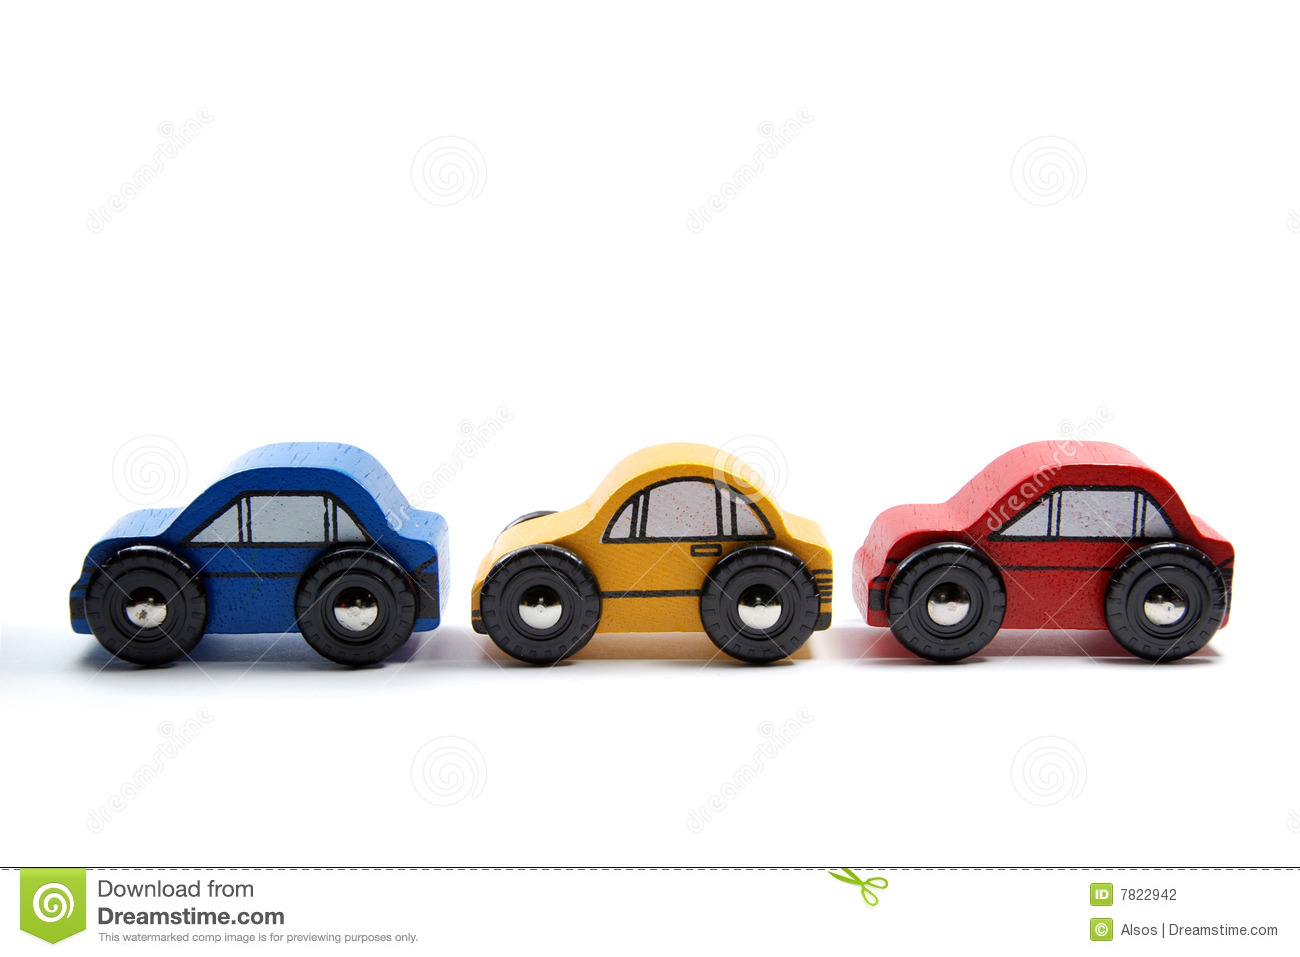 Three simple wooden toy cars in a row, against a white background.